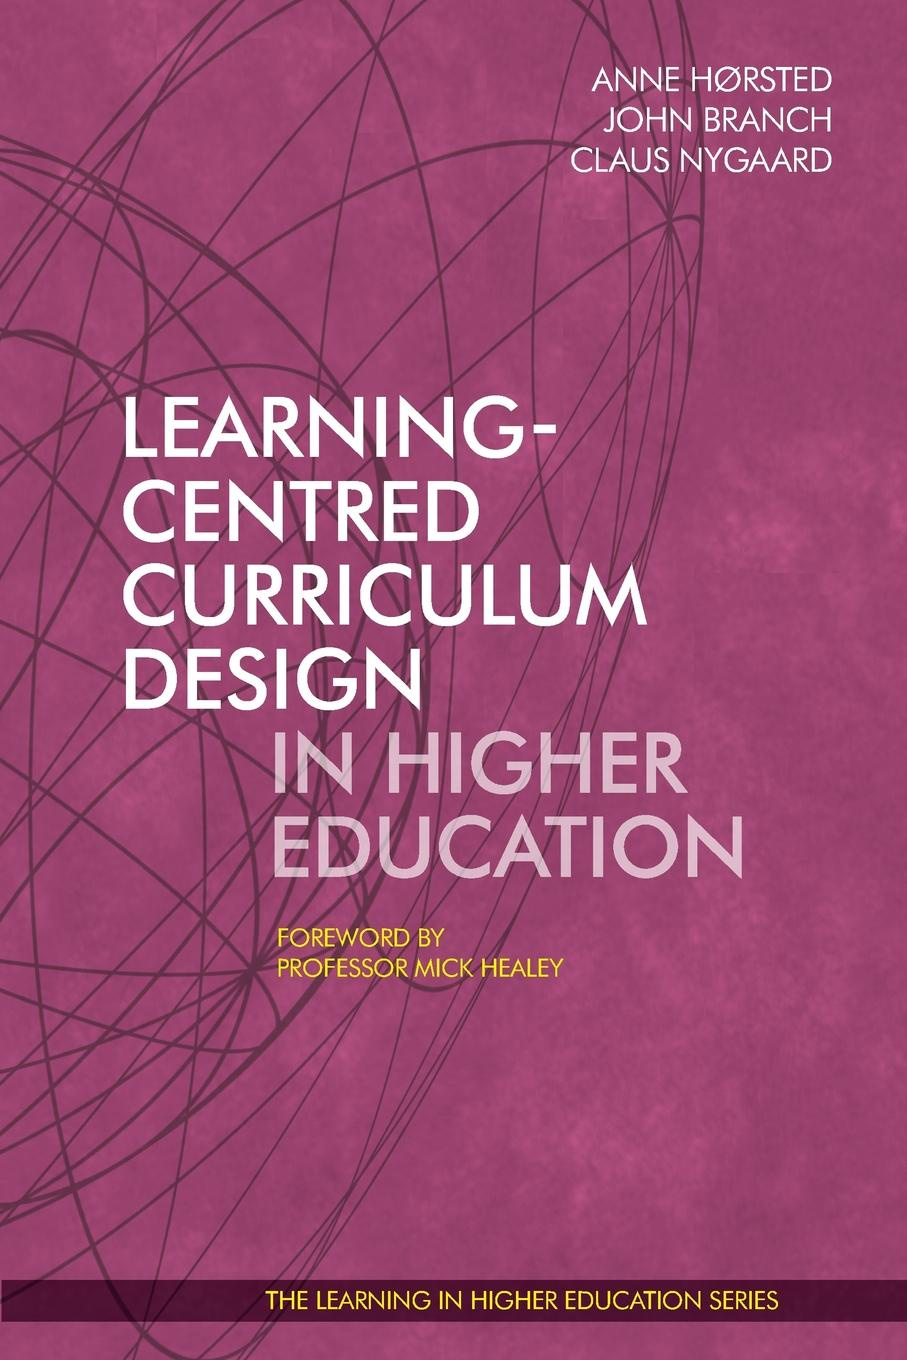 Anne Hørsted Learning-Centred Curriculum Design curriculum